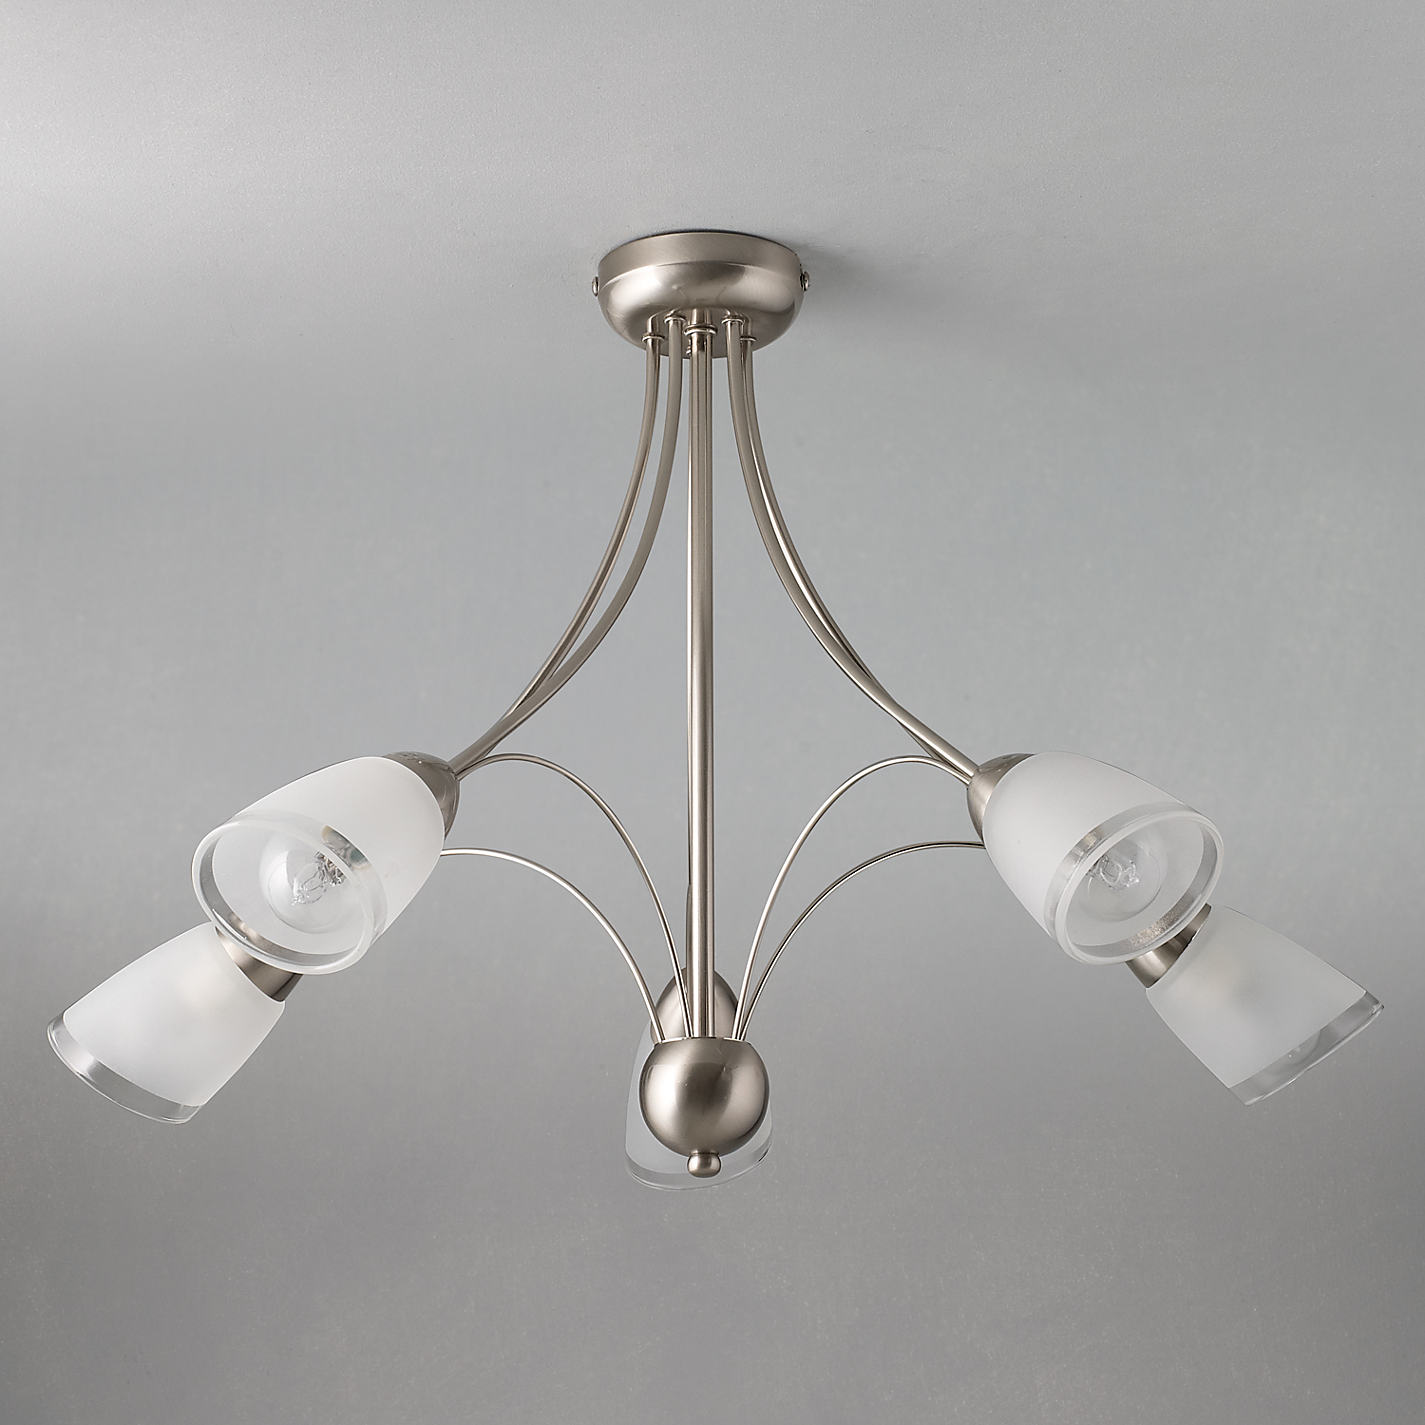 Bathroom Ceiling Lights John Lewis Buy Astro Como 2